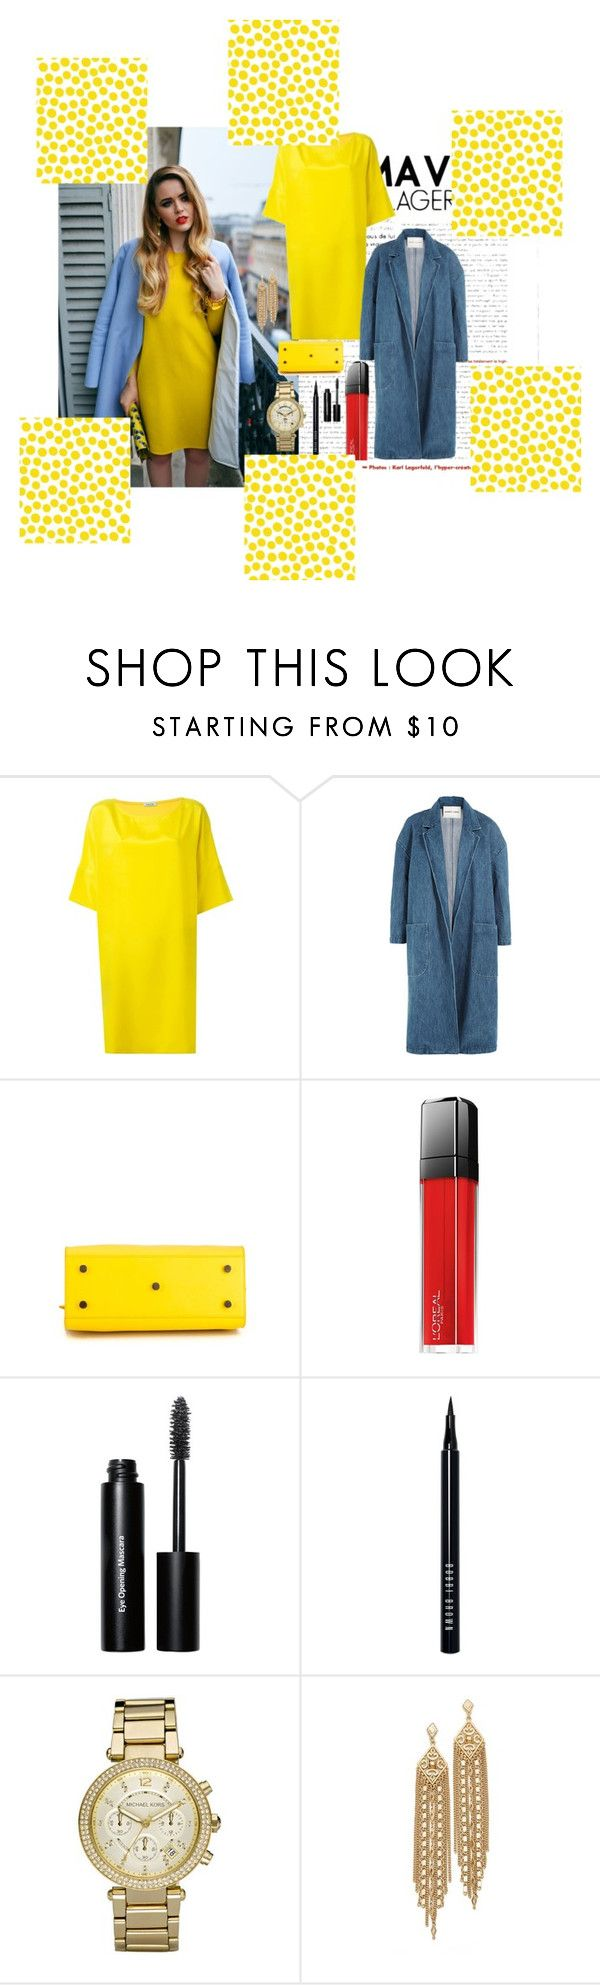 """Yellow"" by michdancelove11 ❤ liked on Polyvore featuring P.A.R.O.S.H., Sandy Liang, Yves Saint Laurent, L'Oréal Paris, Bobbi Brown Cosmetics, Michael Kors, Capwell + Co and Jennifer Paganelli"